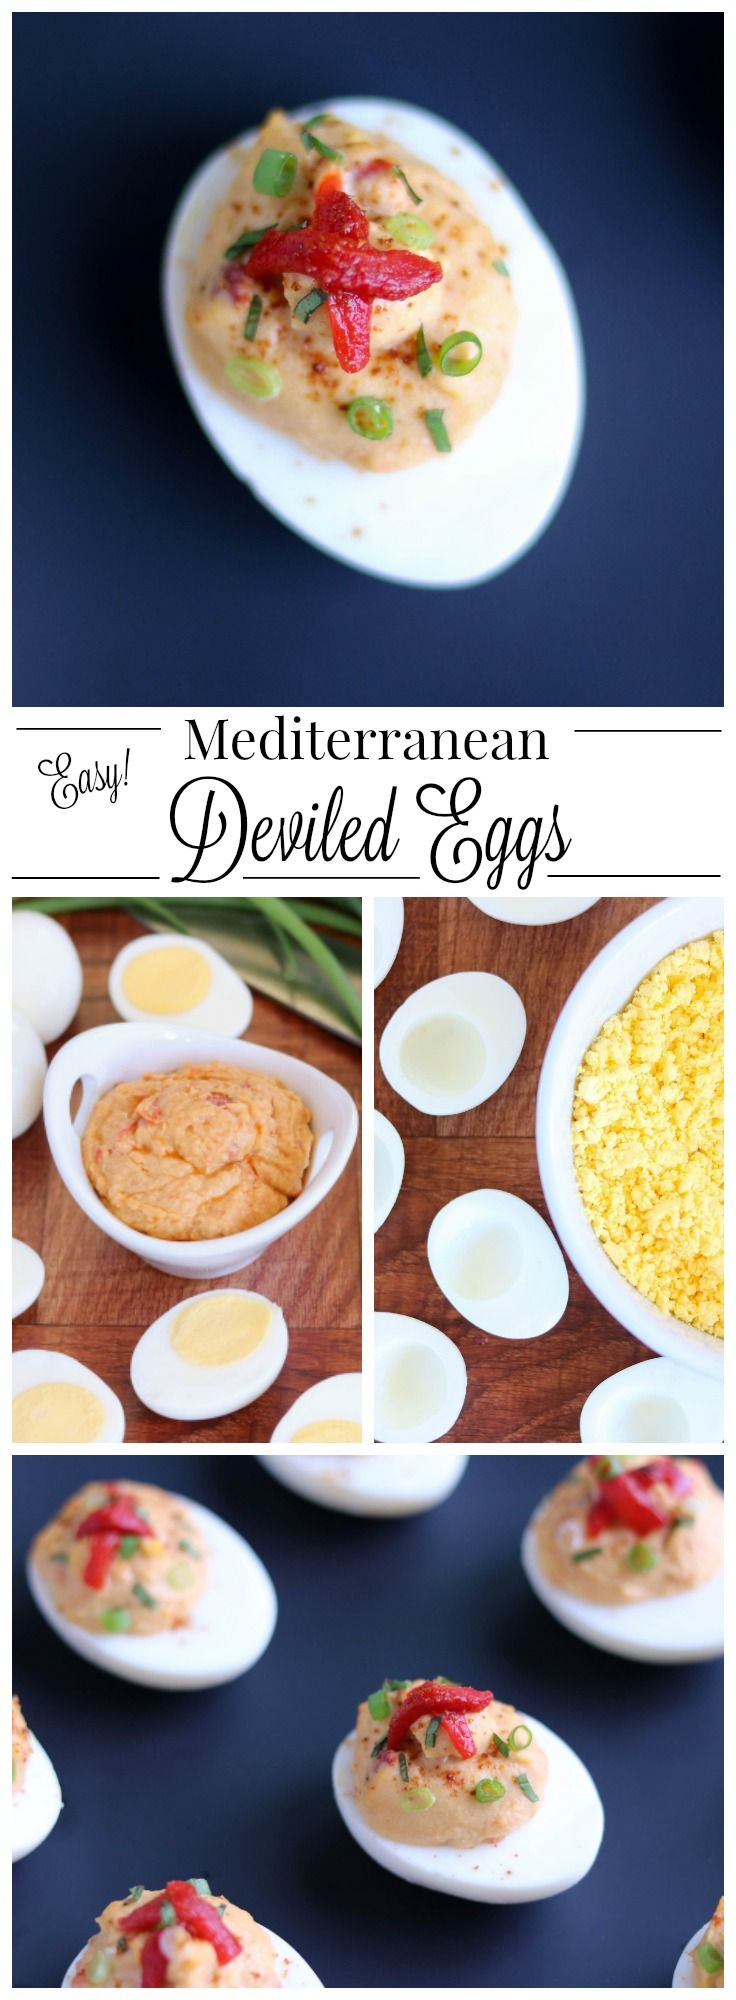 An easy, protein-packed, make-ahead recipe! These Mediterranean Hummus Deviled Eggs feature creamy roasted red pepper hummus and fresh basil. Fast enough for last-minute picnics and tailgates, yet stunning enough for fancy hors d'oeuvres parties ... and a great Easter recipe for using up leftover Easter Eggs! This easy deviled egg recipe is loaded with great flavor - yet so much healthier than traditional deviled eggs! A whole new, refreshing spin on a classic! | www.TwoHealthyKitchens.com